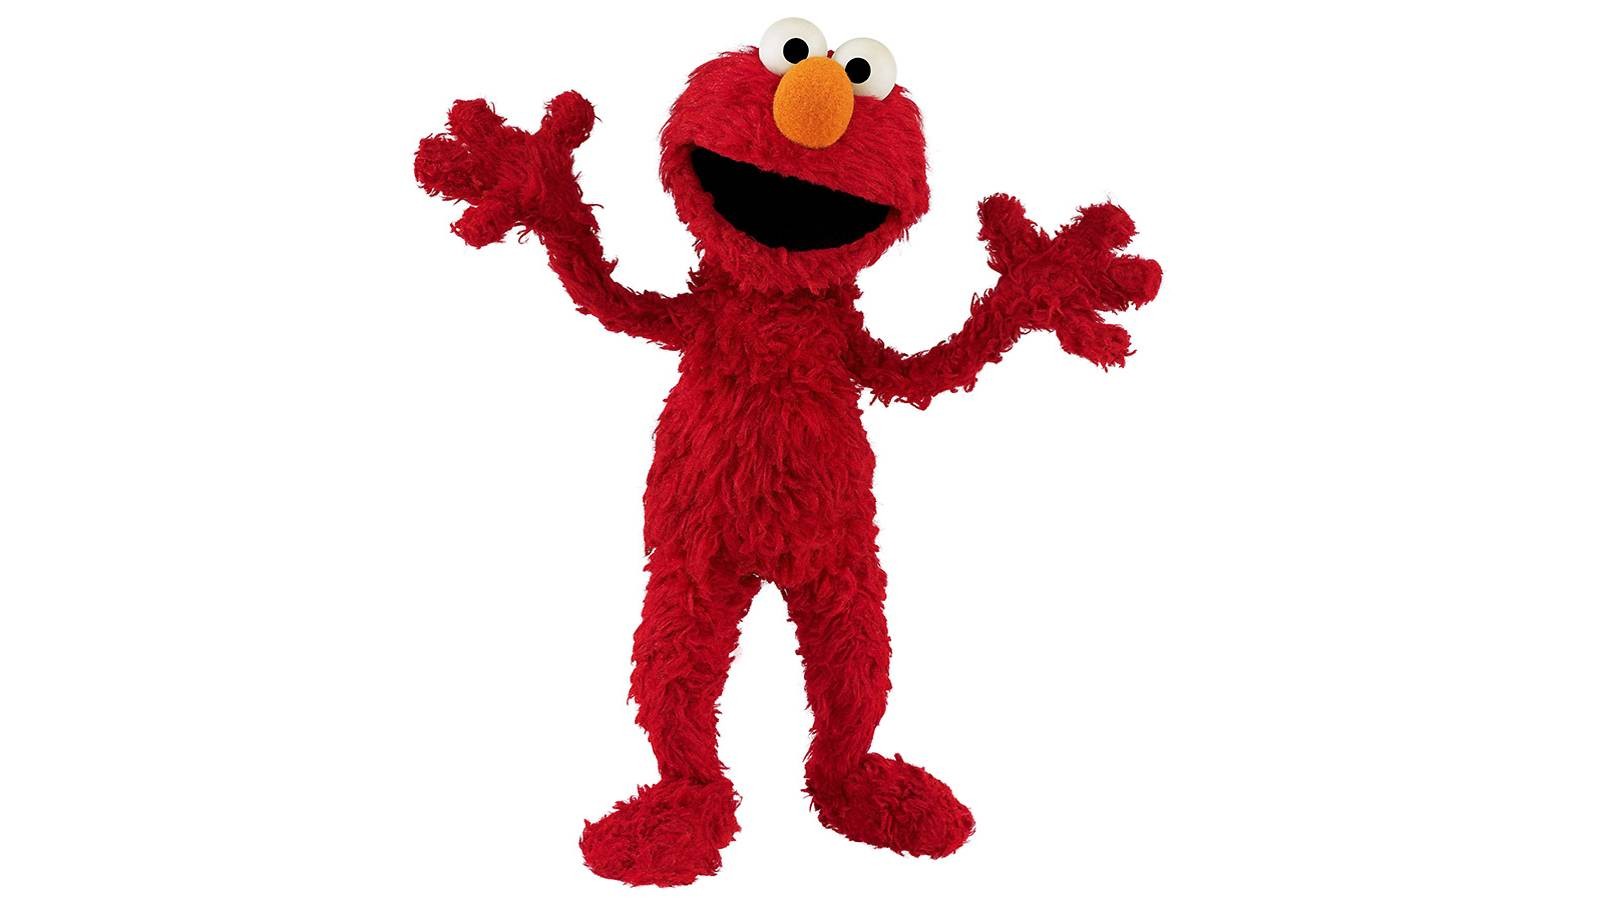 Tots-Elmo-brightens-the-world-one-giggle-at-a-time-MAIN